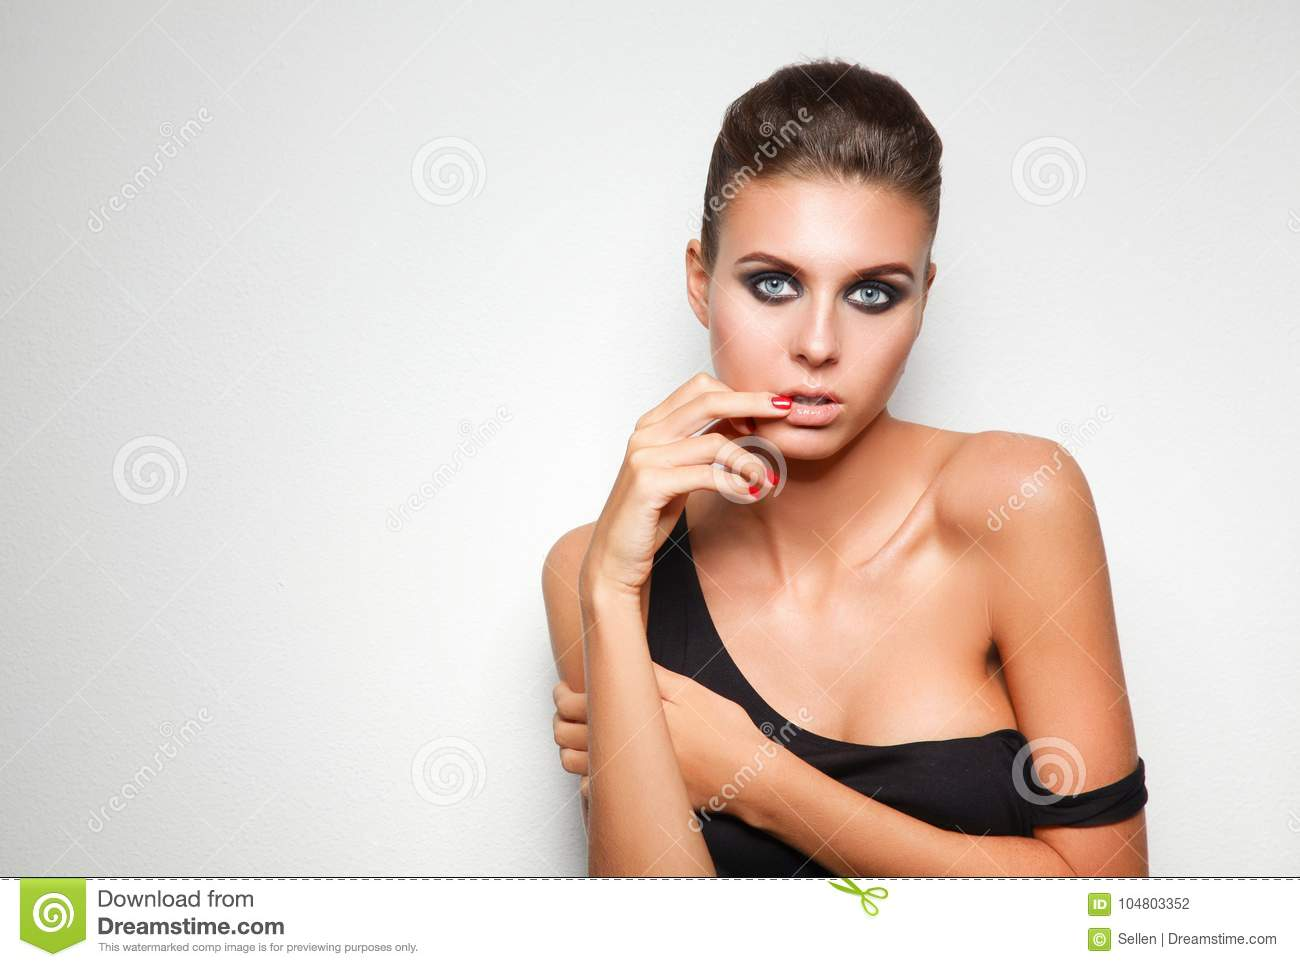 Beauty. Portrait of a young woman on white background